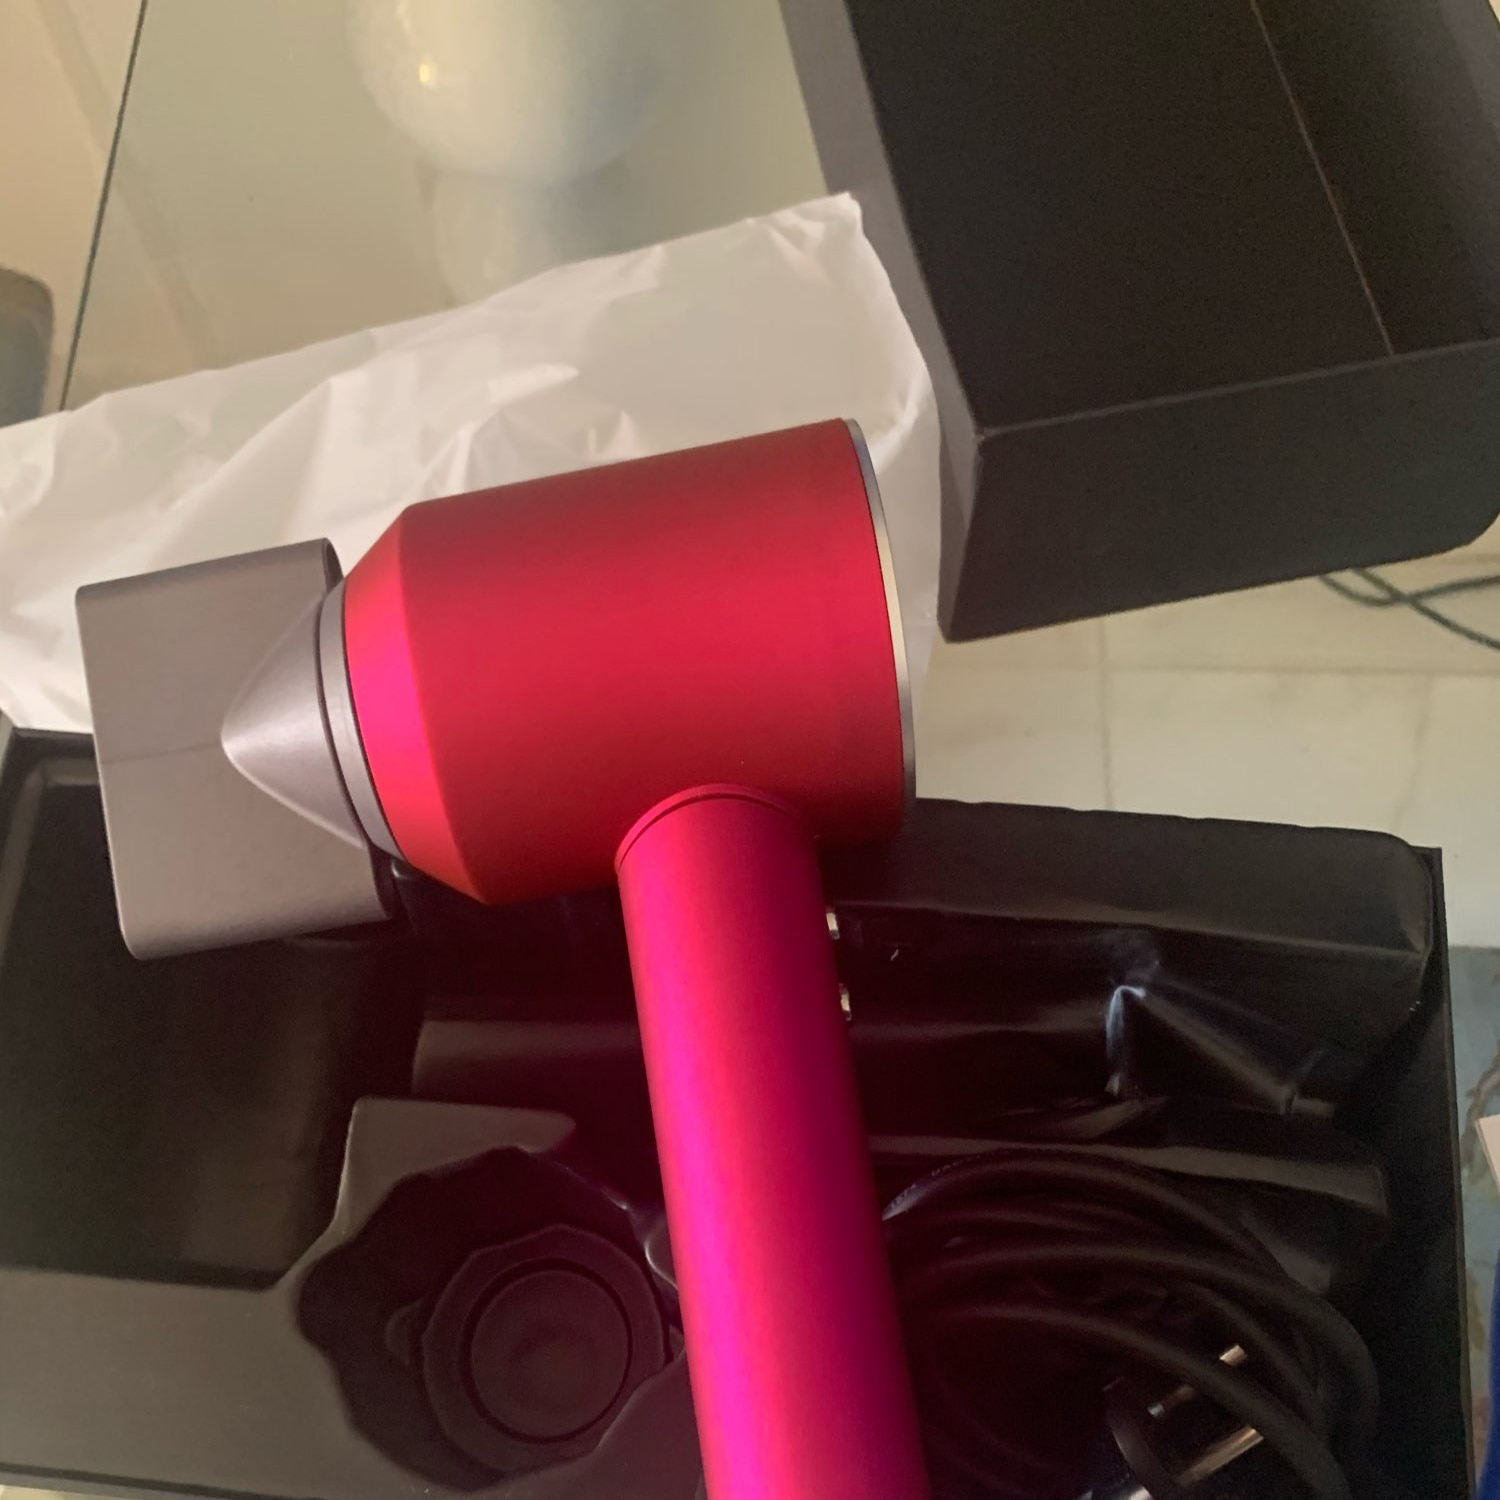 leafless blow hair dryer Anion strong wind smooth fast drying salon portable household no leaf barber hairdryer travel case enlarge